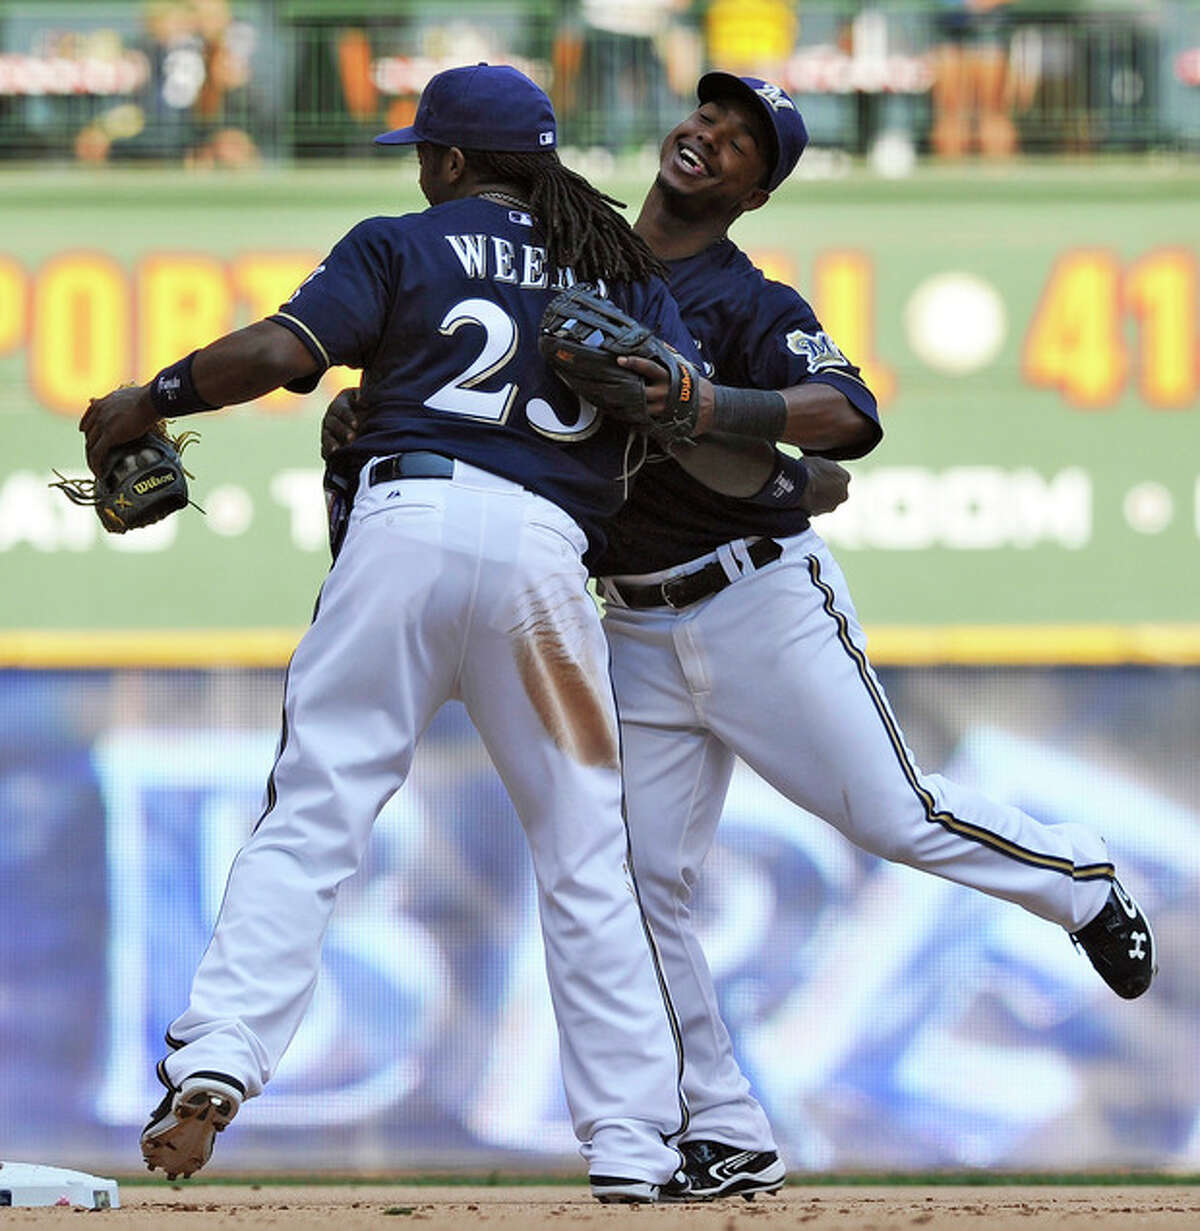 Milwaukee Brewers' Rickie Weeks (23) and Jean Segura celebrate the Brewers 3-0 victory over the New York Mets after a baseball game, Sunday, Sept. 16, 2012, in Milwaukee. (AP Photo/Jim Prisching)